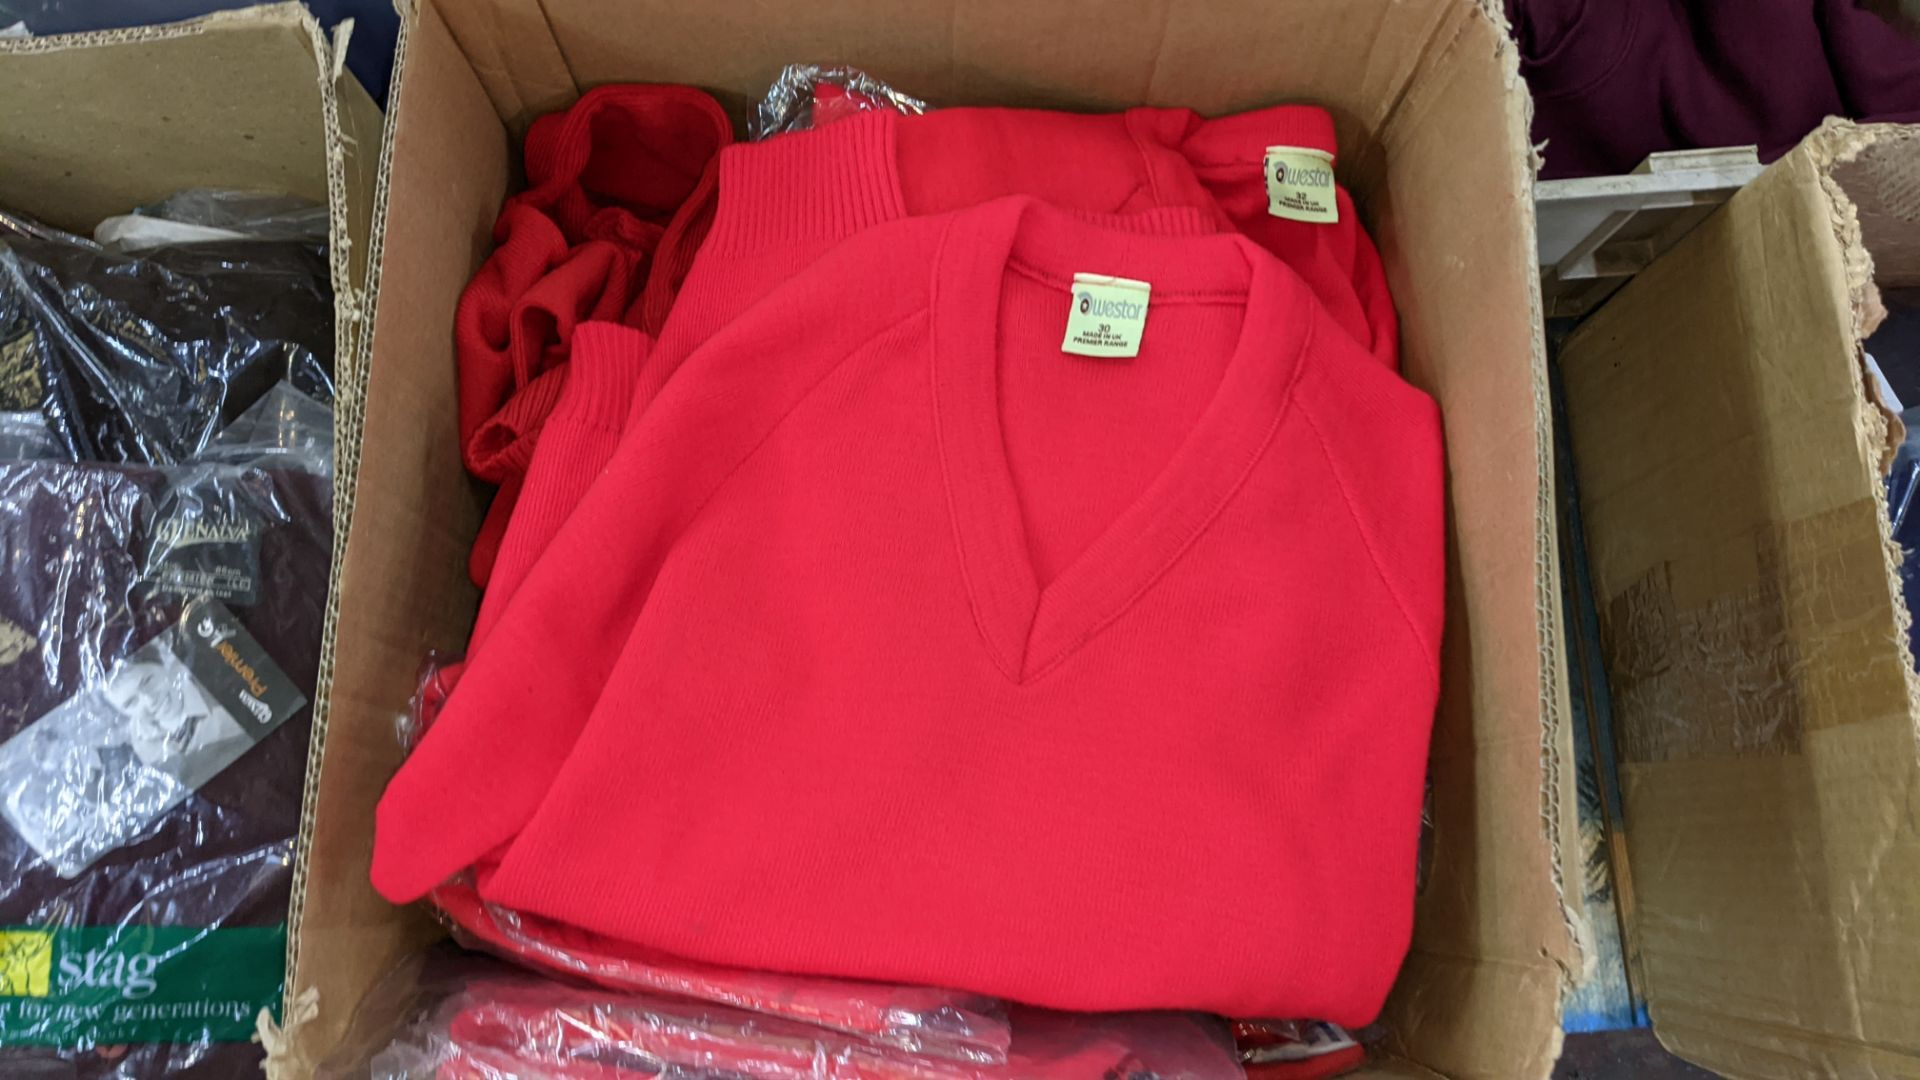 Approx 17 off children's red knitted tops - the contents of 1 box - Image 3 of 4